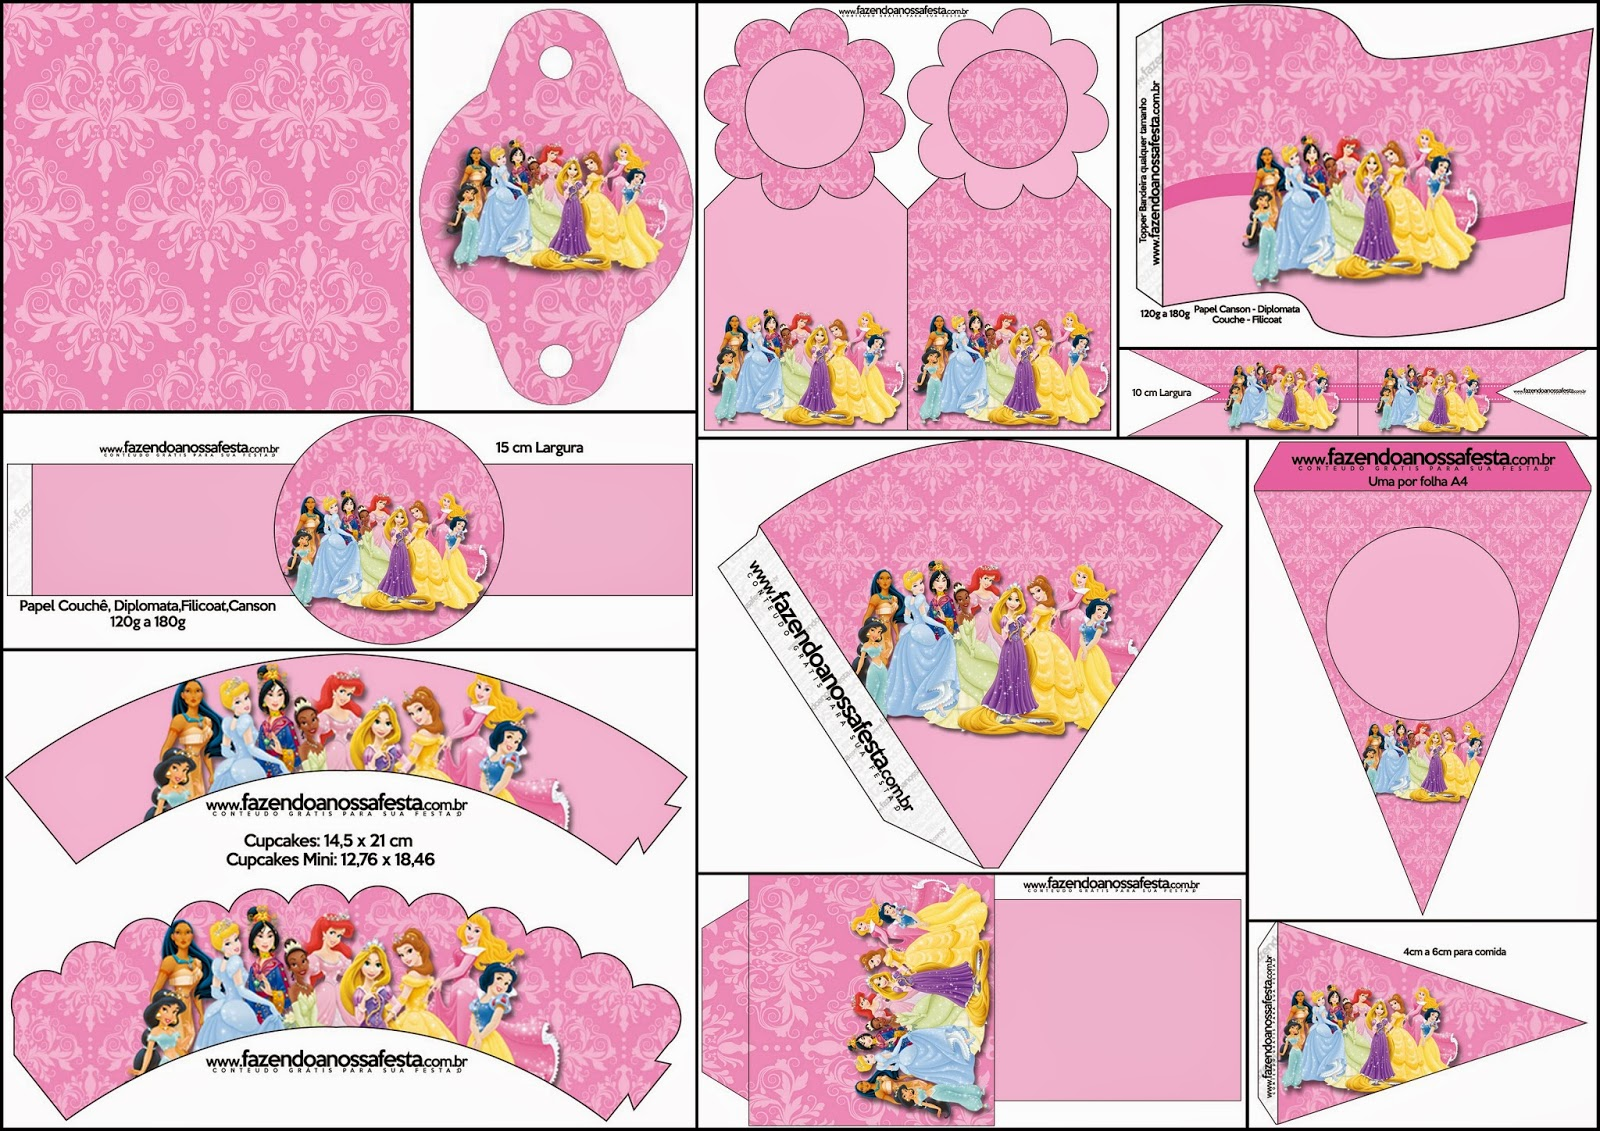 Disney Princess Party: Free Party Printables. | Oh My Fiesta! in english